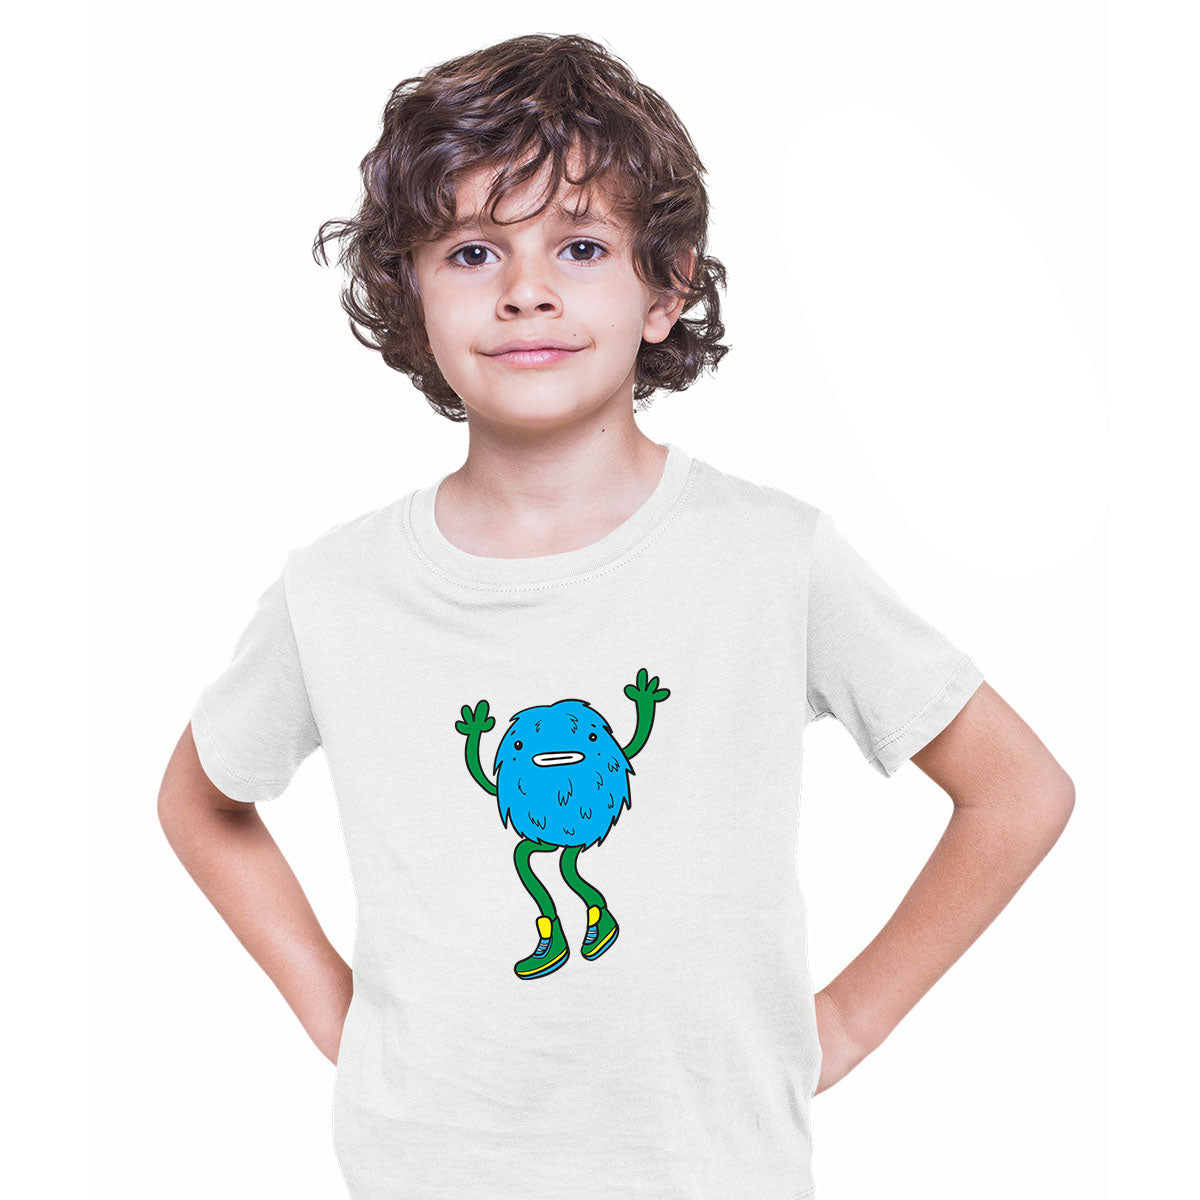 Cookie Fluffy Inspired Monster Funny Gift Drawing Kids Printed White T-Shirt for Kids